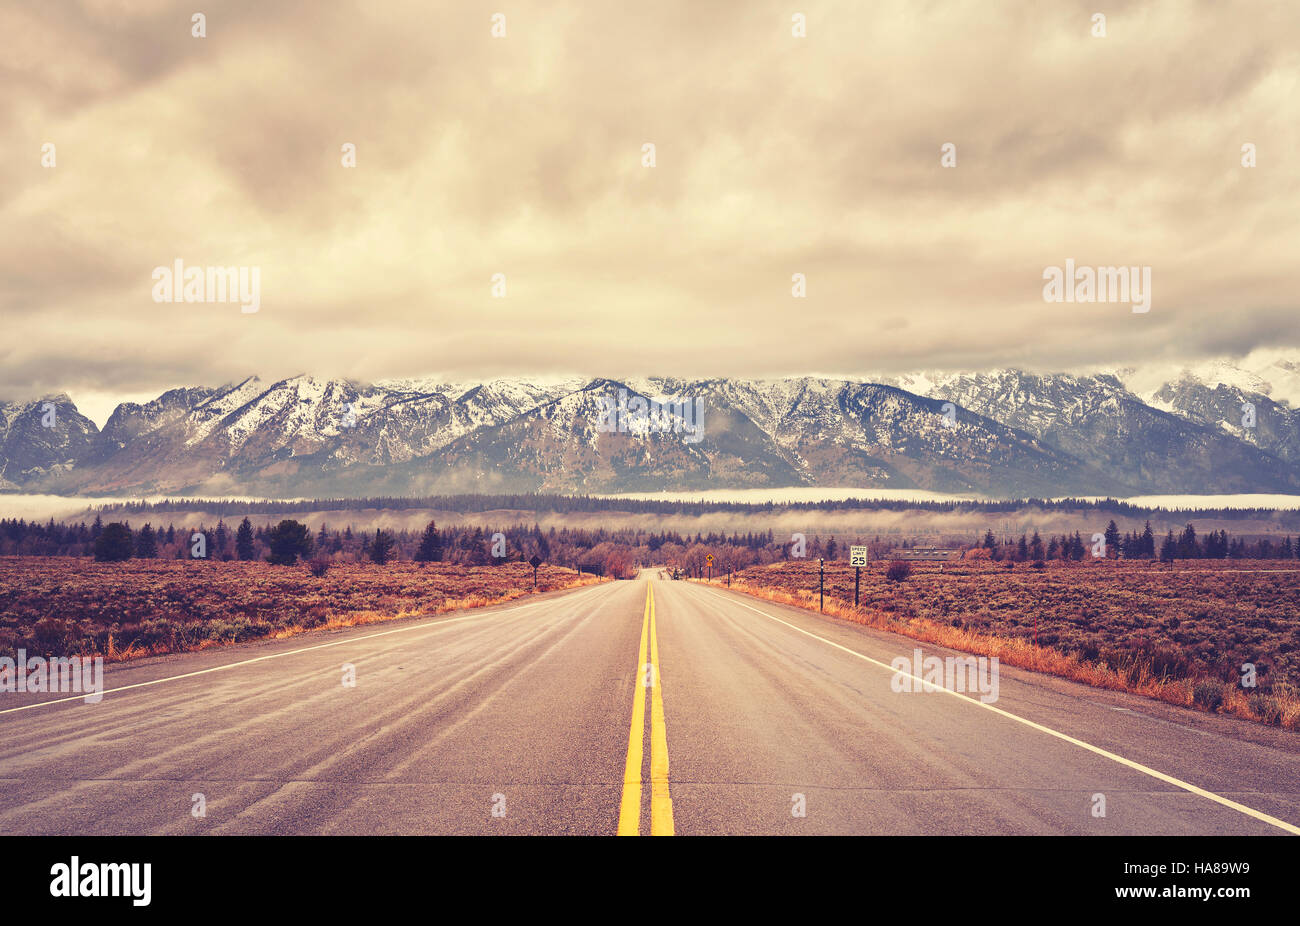 Vintage toned scenic road in the Grand Teton National Park, Wyoming, USA. - Stock Image